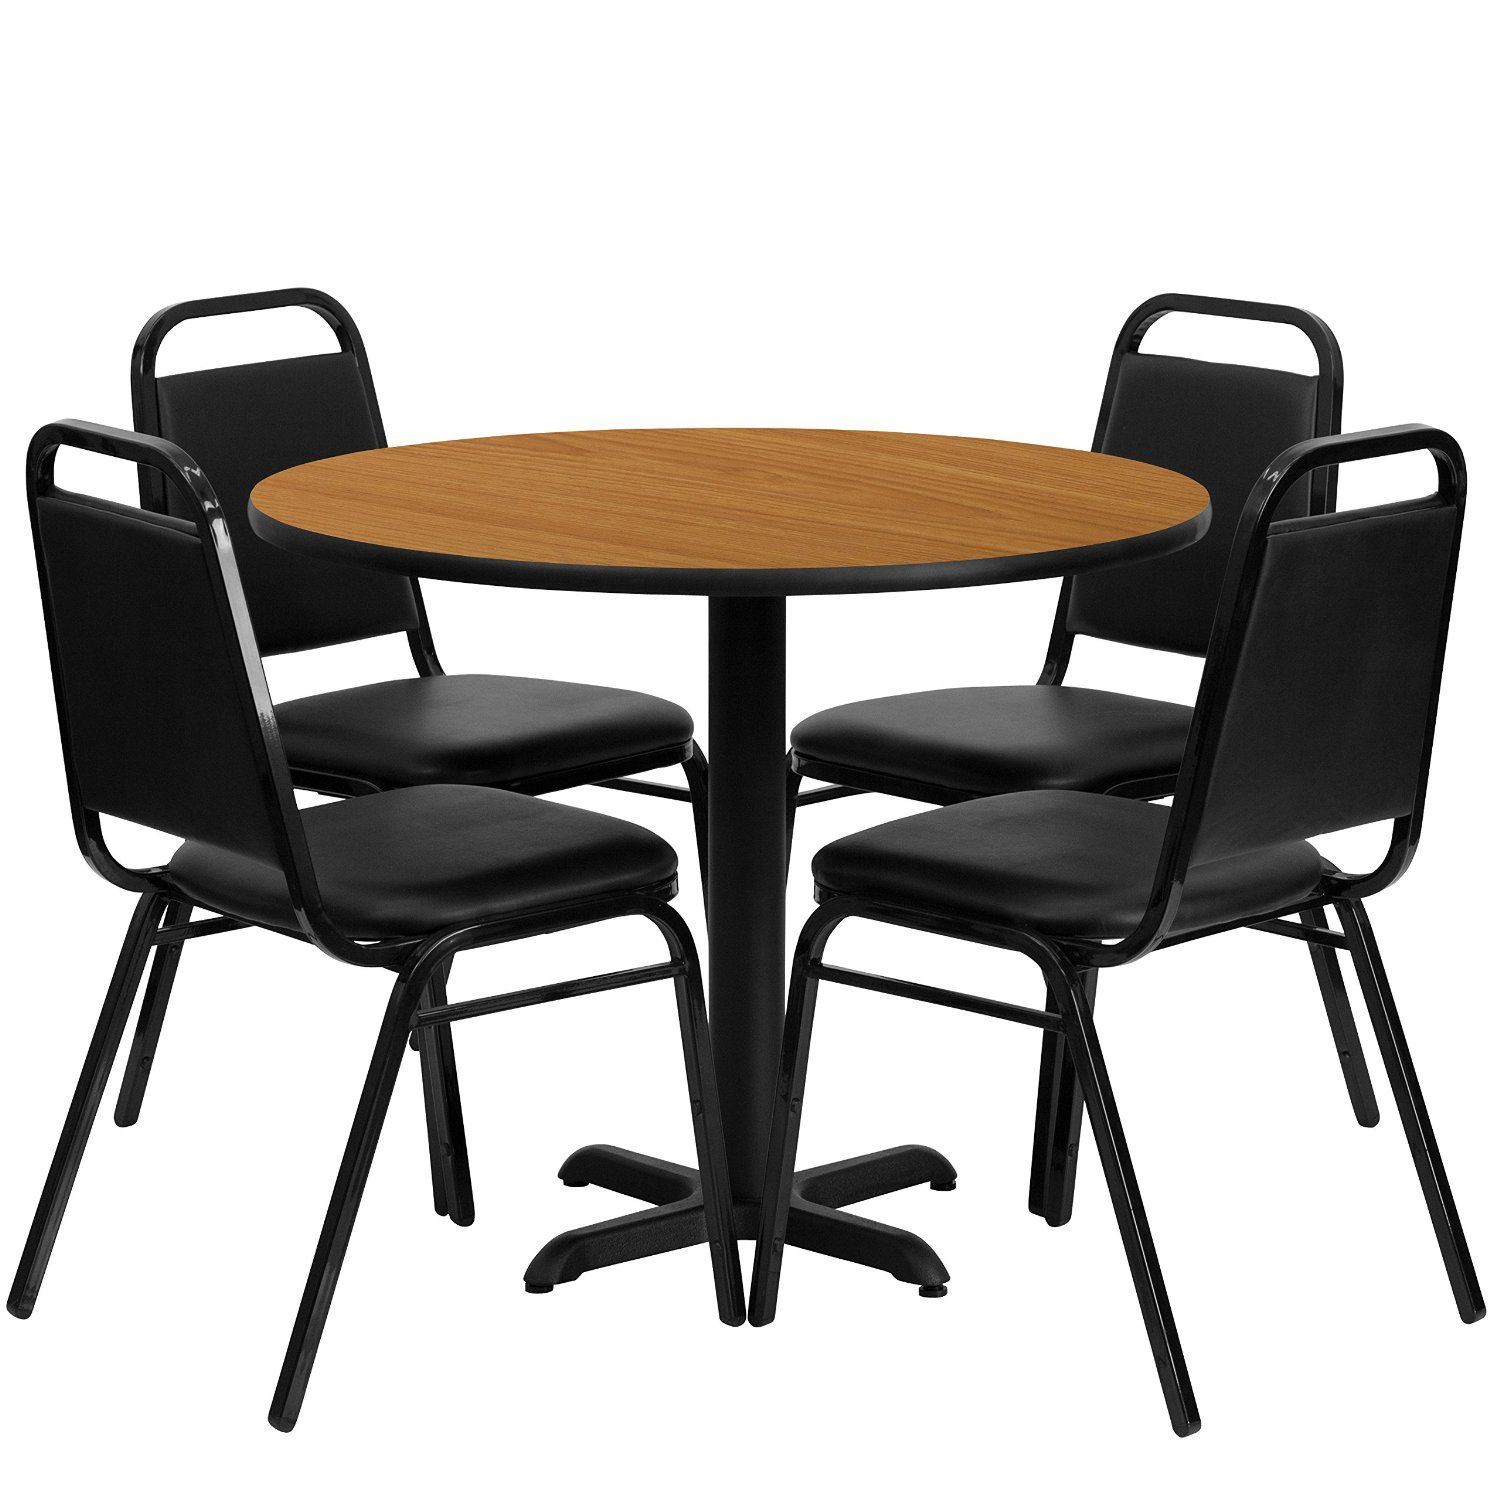 Round Office Table And Chairs Table And Chair Sets Dining Furniture Dining Room Sets